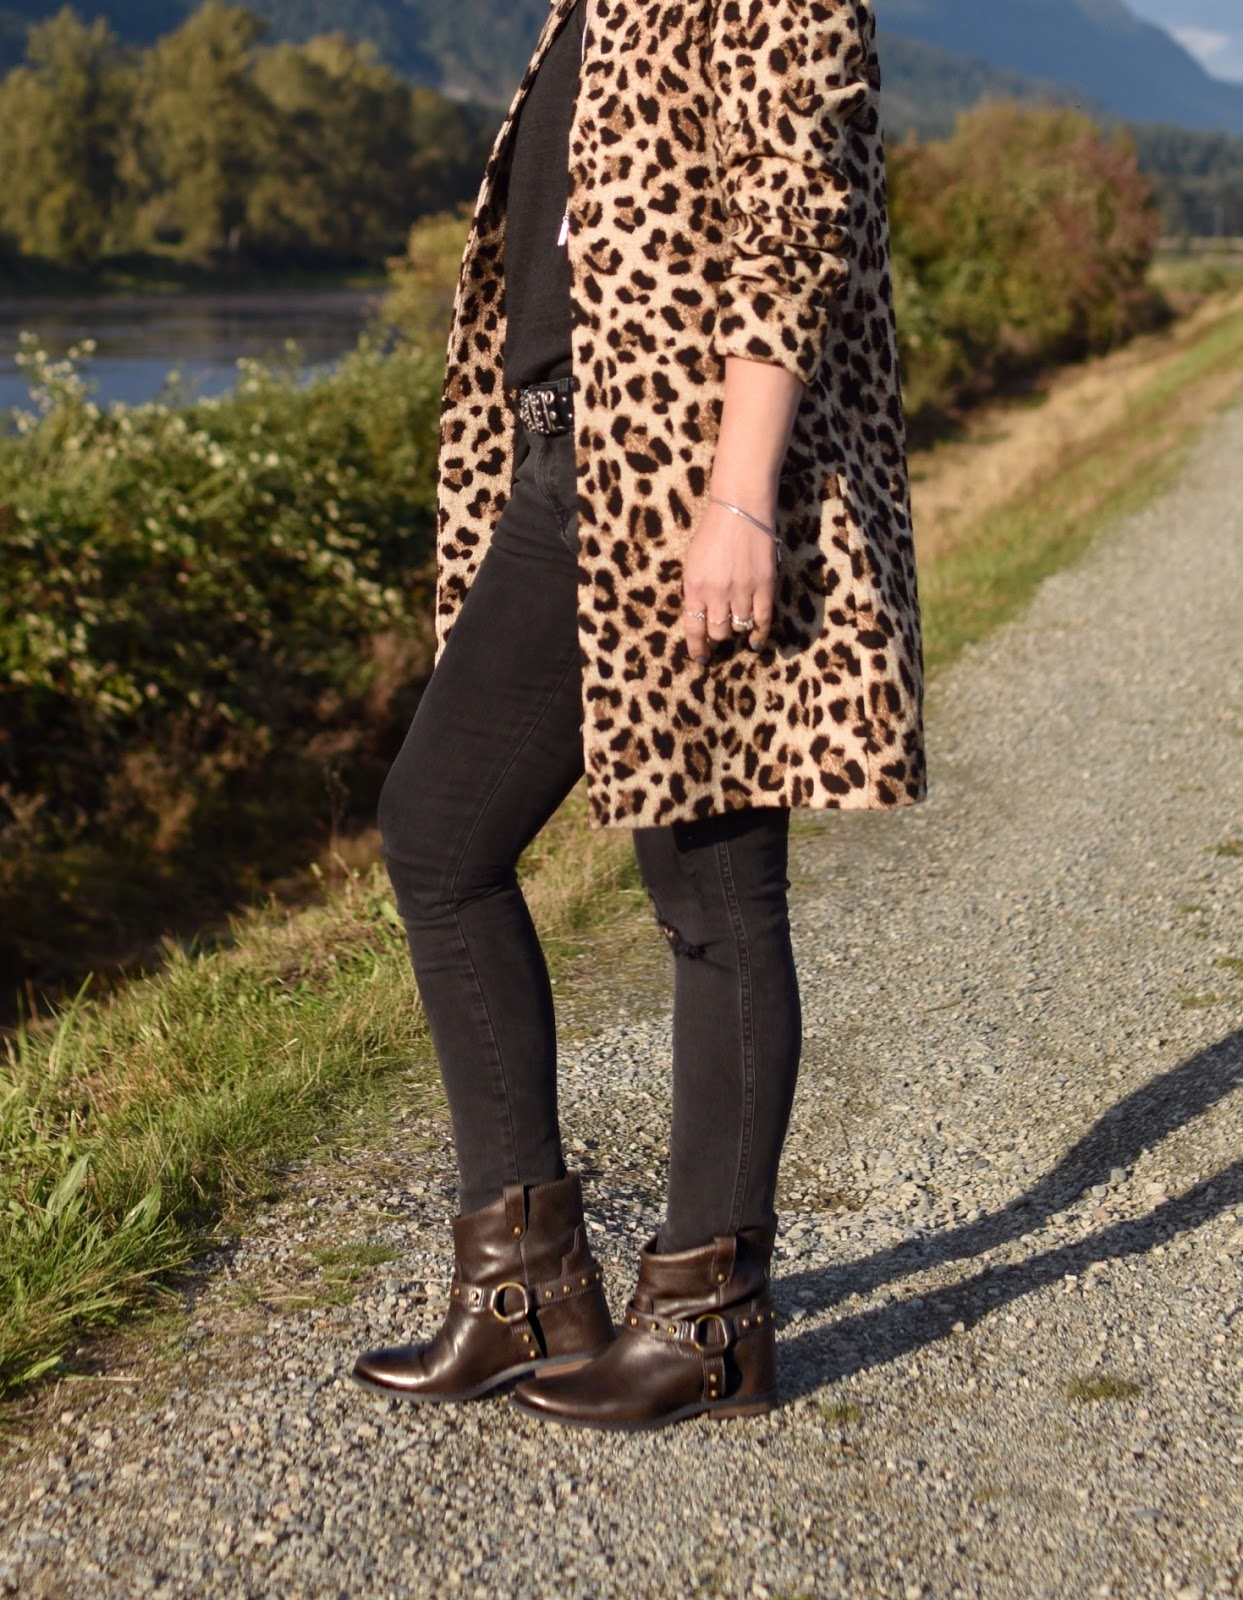 Monika Faulkner outfit inspiration - distressed black skinny jeans, leopard-patterned coat, hidden-wedge booties